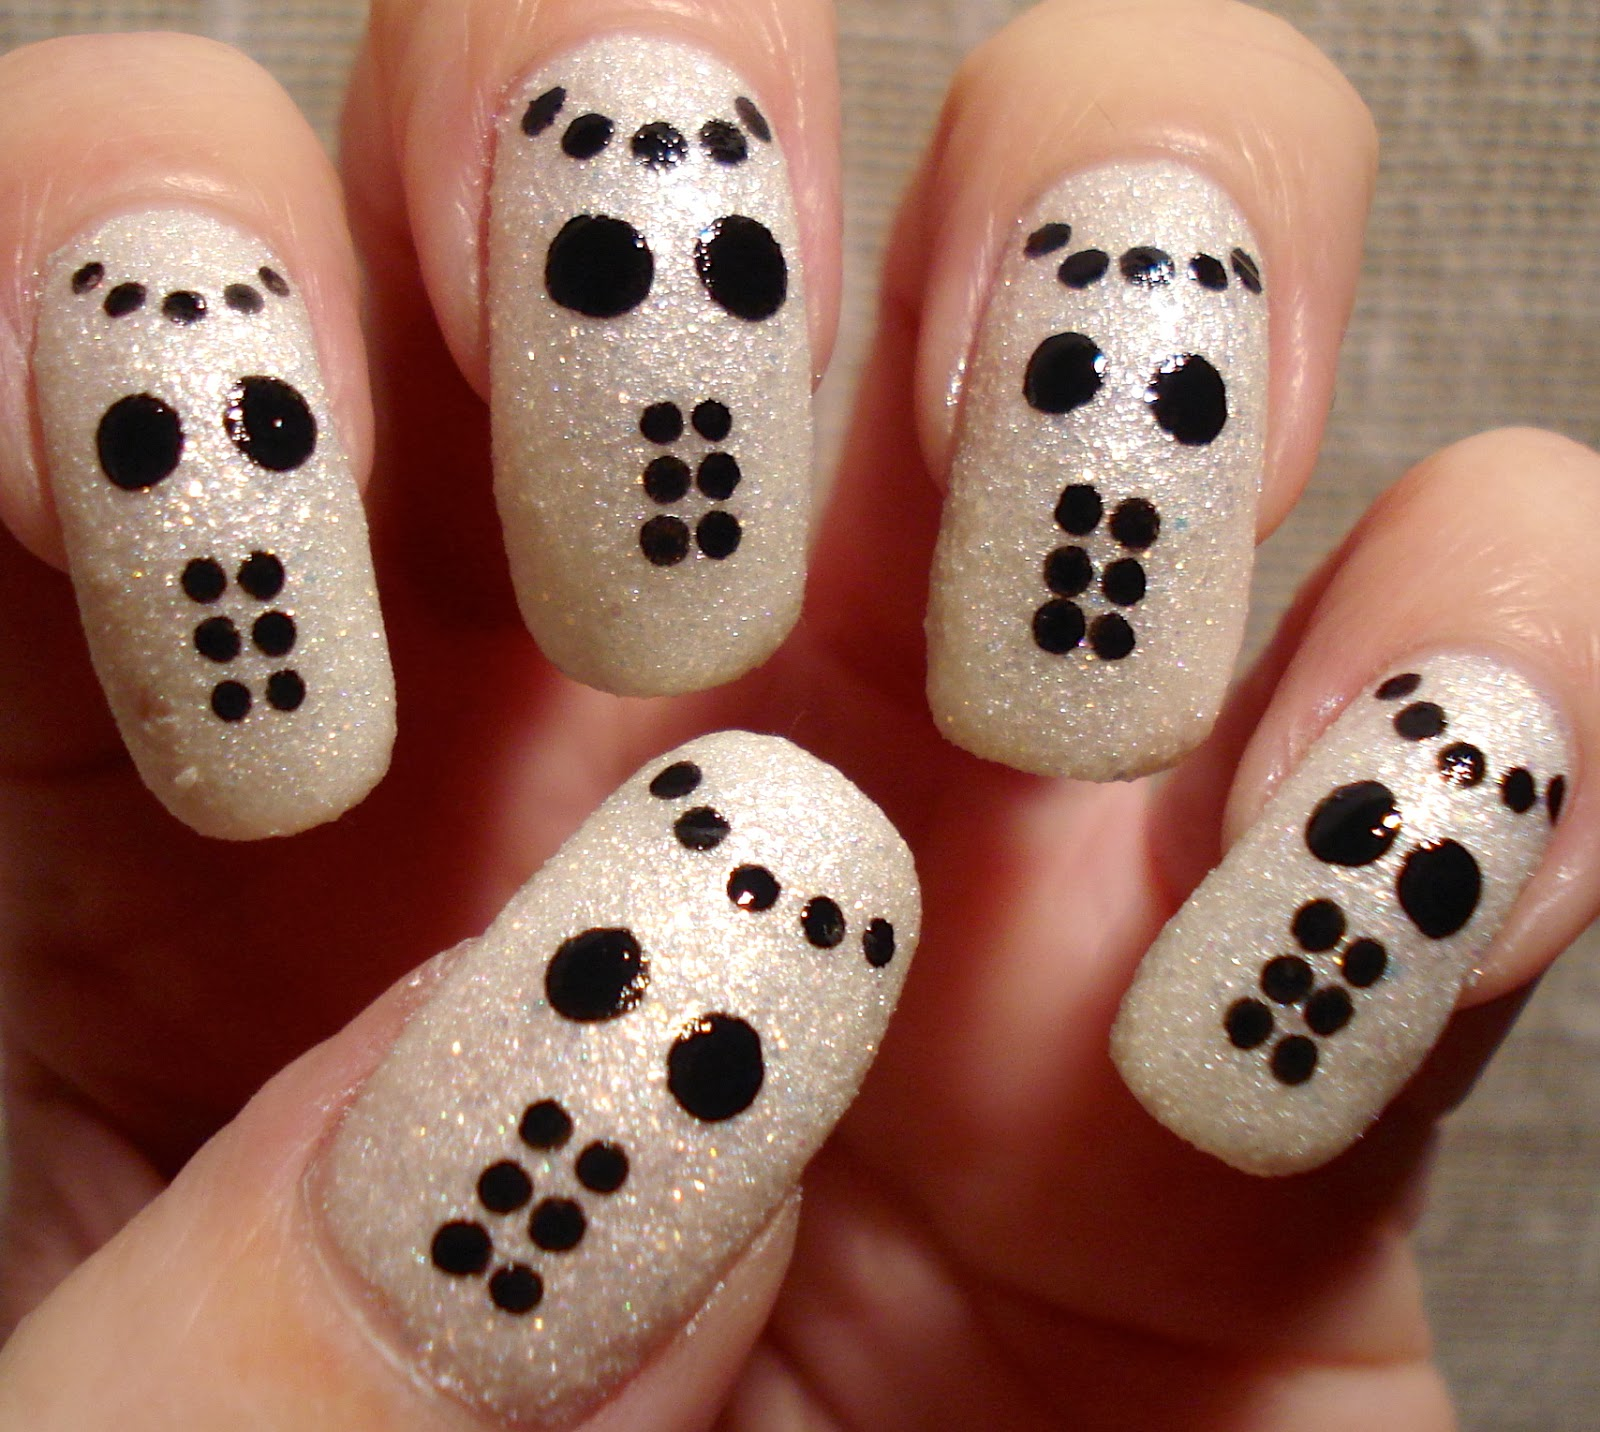 Little Miss Nailpolish: Jason Voorhees Goes Glam Nails